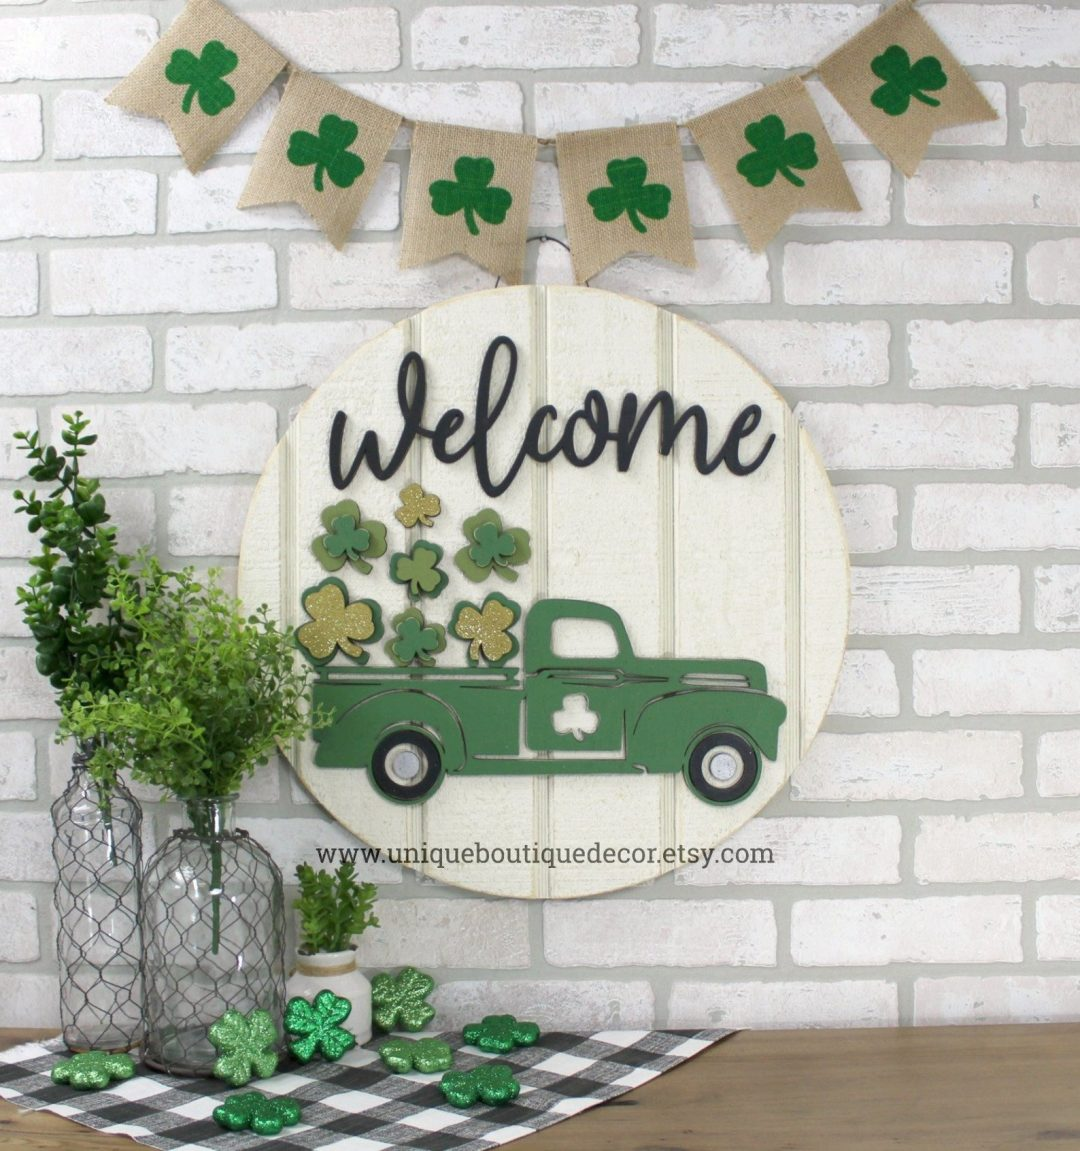 St. Patrick's Day decorations - wooden sign